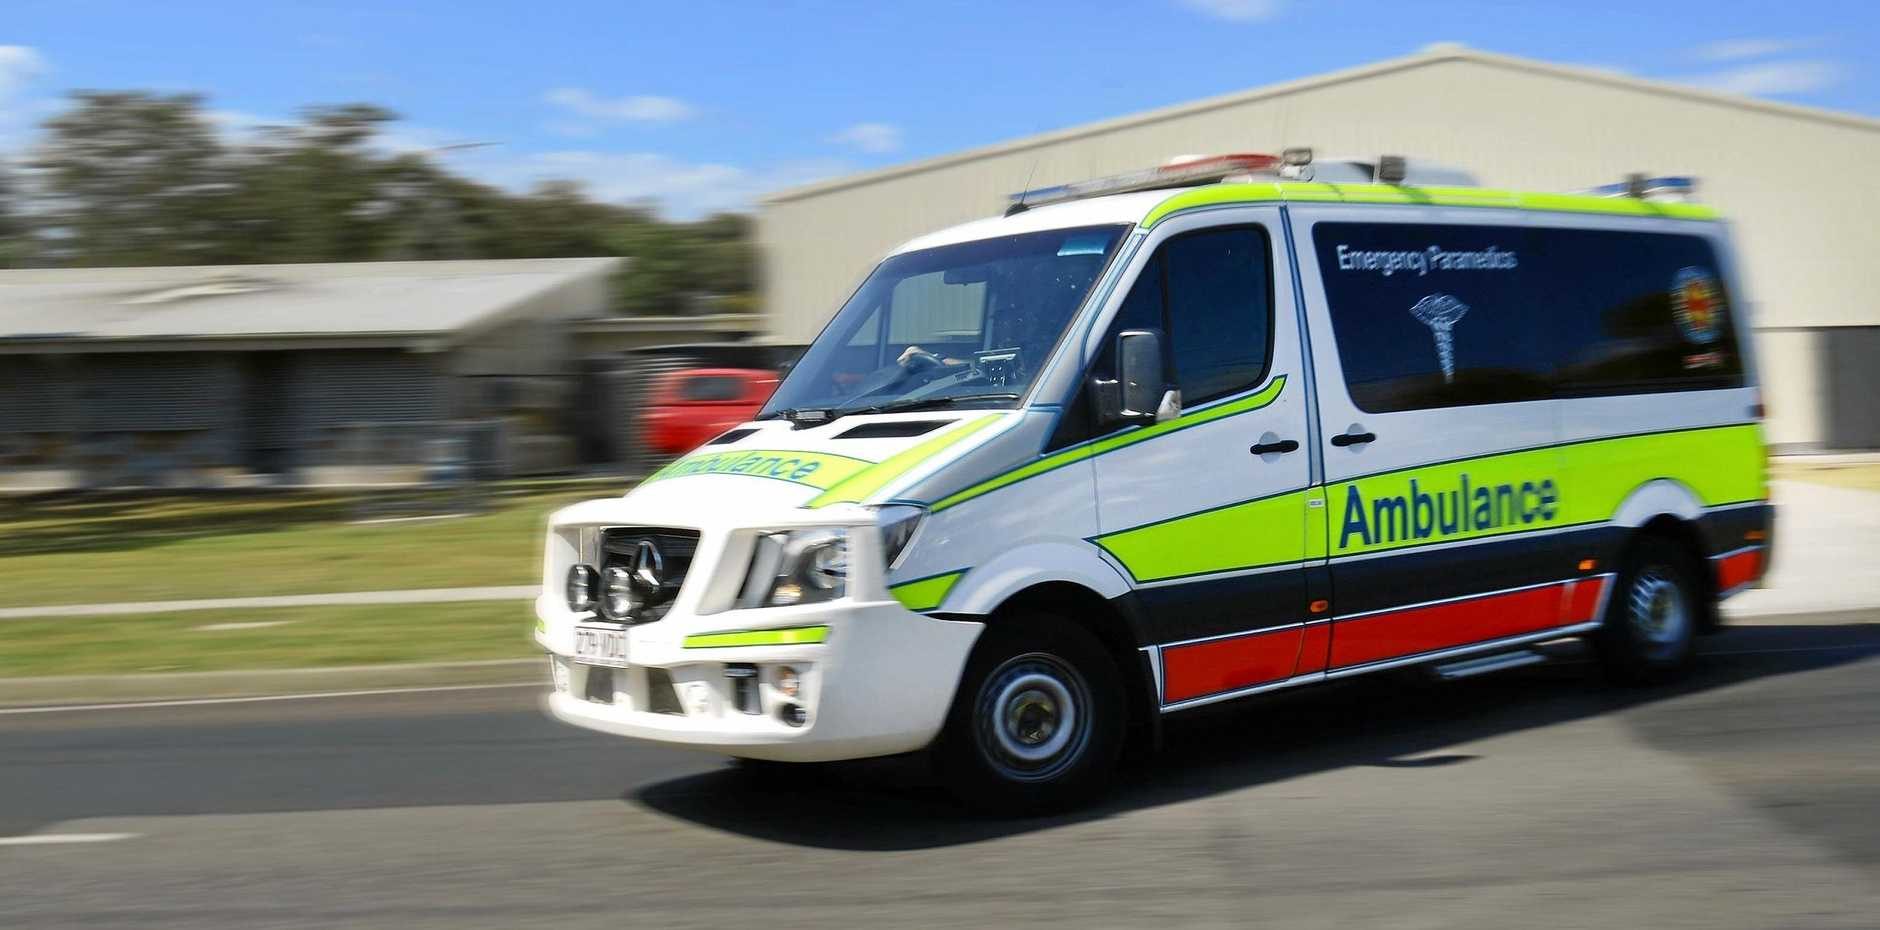 Emergency Services have responded to suspected alcohol still explosion in Bucasia.